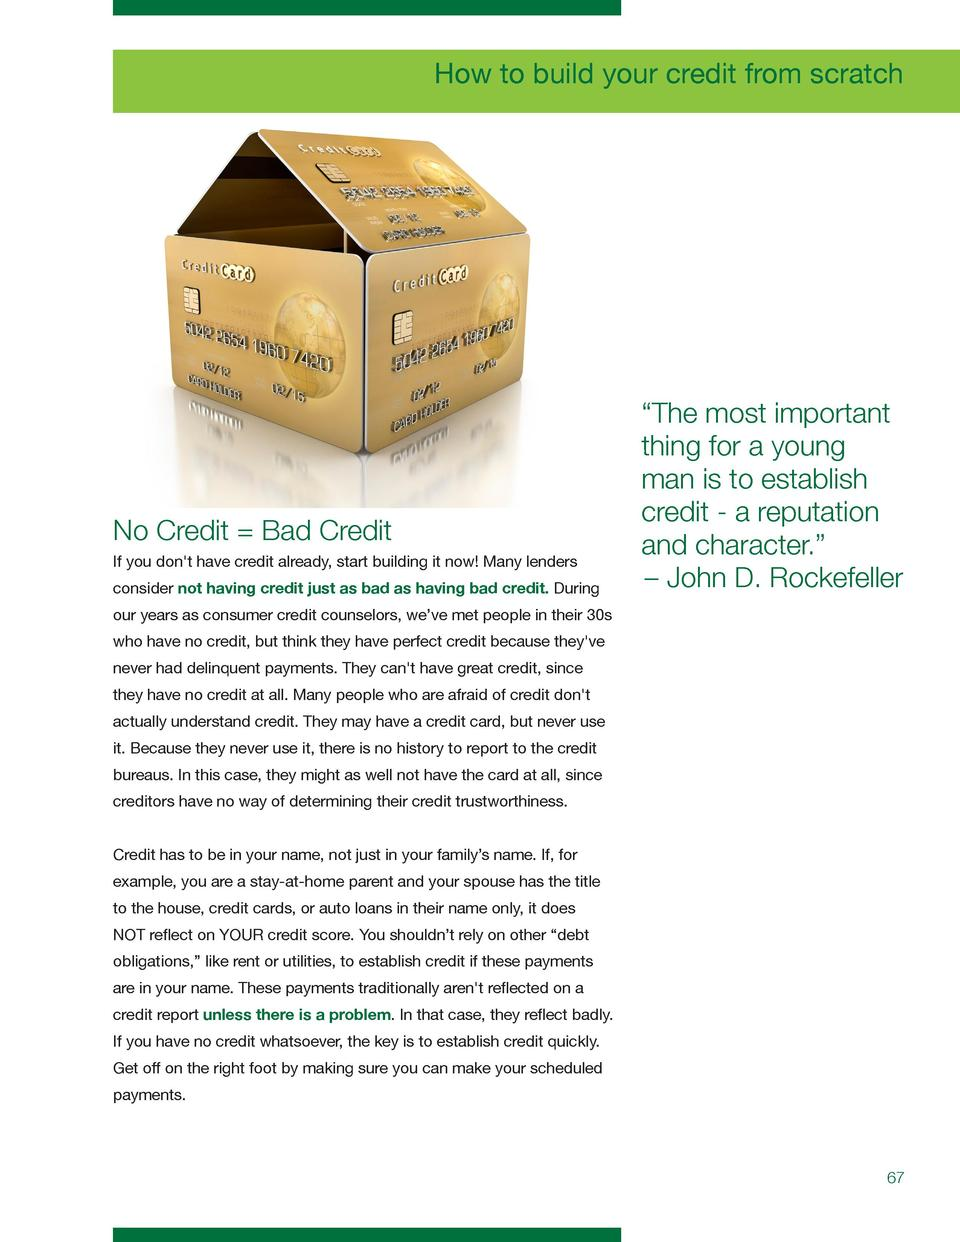 How To Build Good Credit Uk Solution For Dummiesprehensive Guide To 529  College Savings Plans;